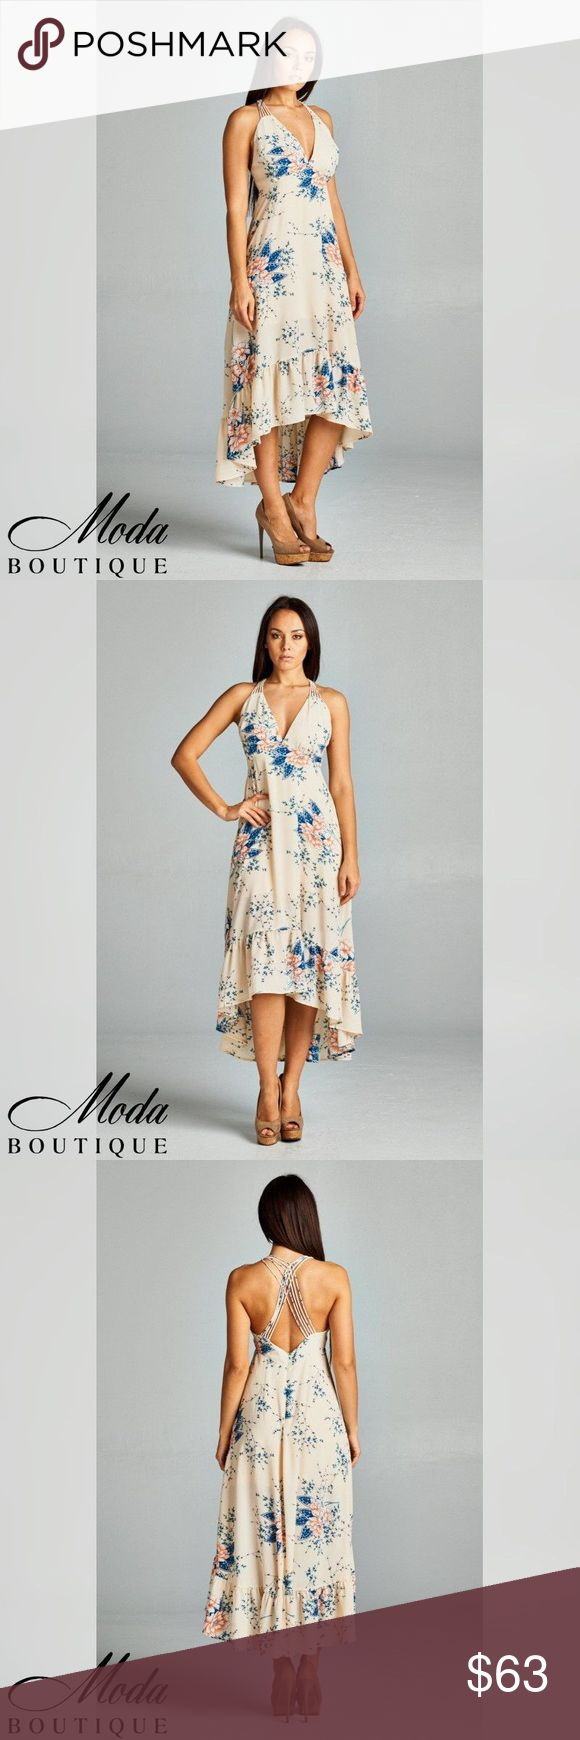 """Sexy Flower 49"""" Maxi Dress Sexy Flower 49"""" Maxi Dress Color Beige / Blue Model wearing a small Material100% Polyester Notes: These are quality boutique garments, not something off a Chinese website! They are the same pieces that are resold in popular stores like Nordstrom's, Saks Fifth, and higher end boutiques. Free People Anthropologie Urban Outfitters Madewell Modabyboutique Moda Boutique Moda SF SFmoda wholesale @wholesales boutique clothing A.Peach Dresses Maxi"""